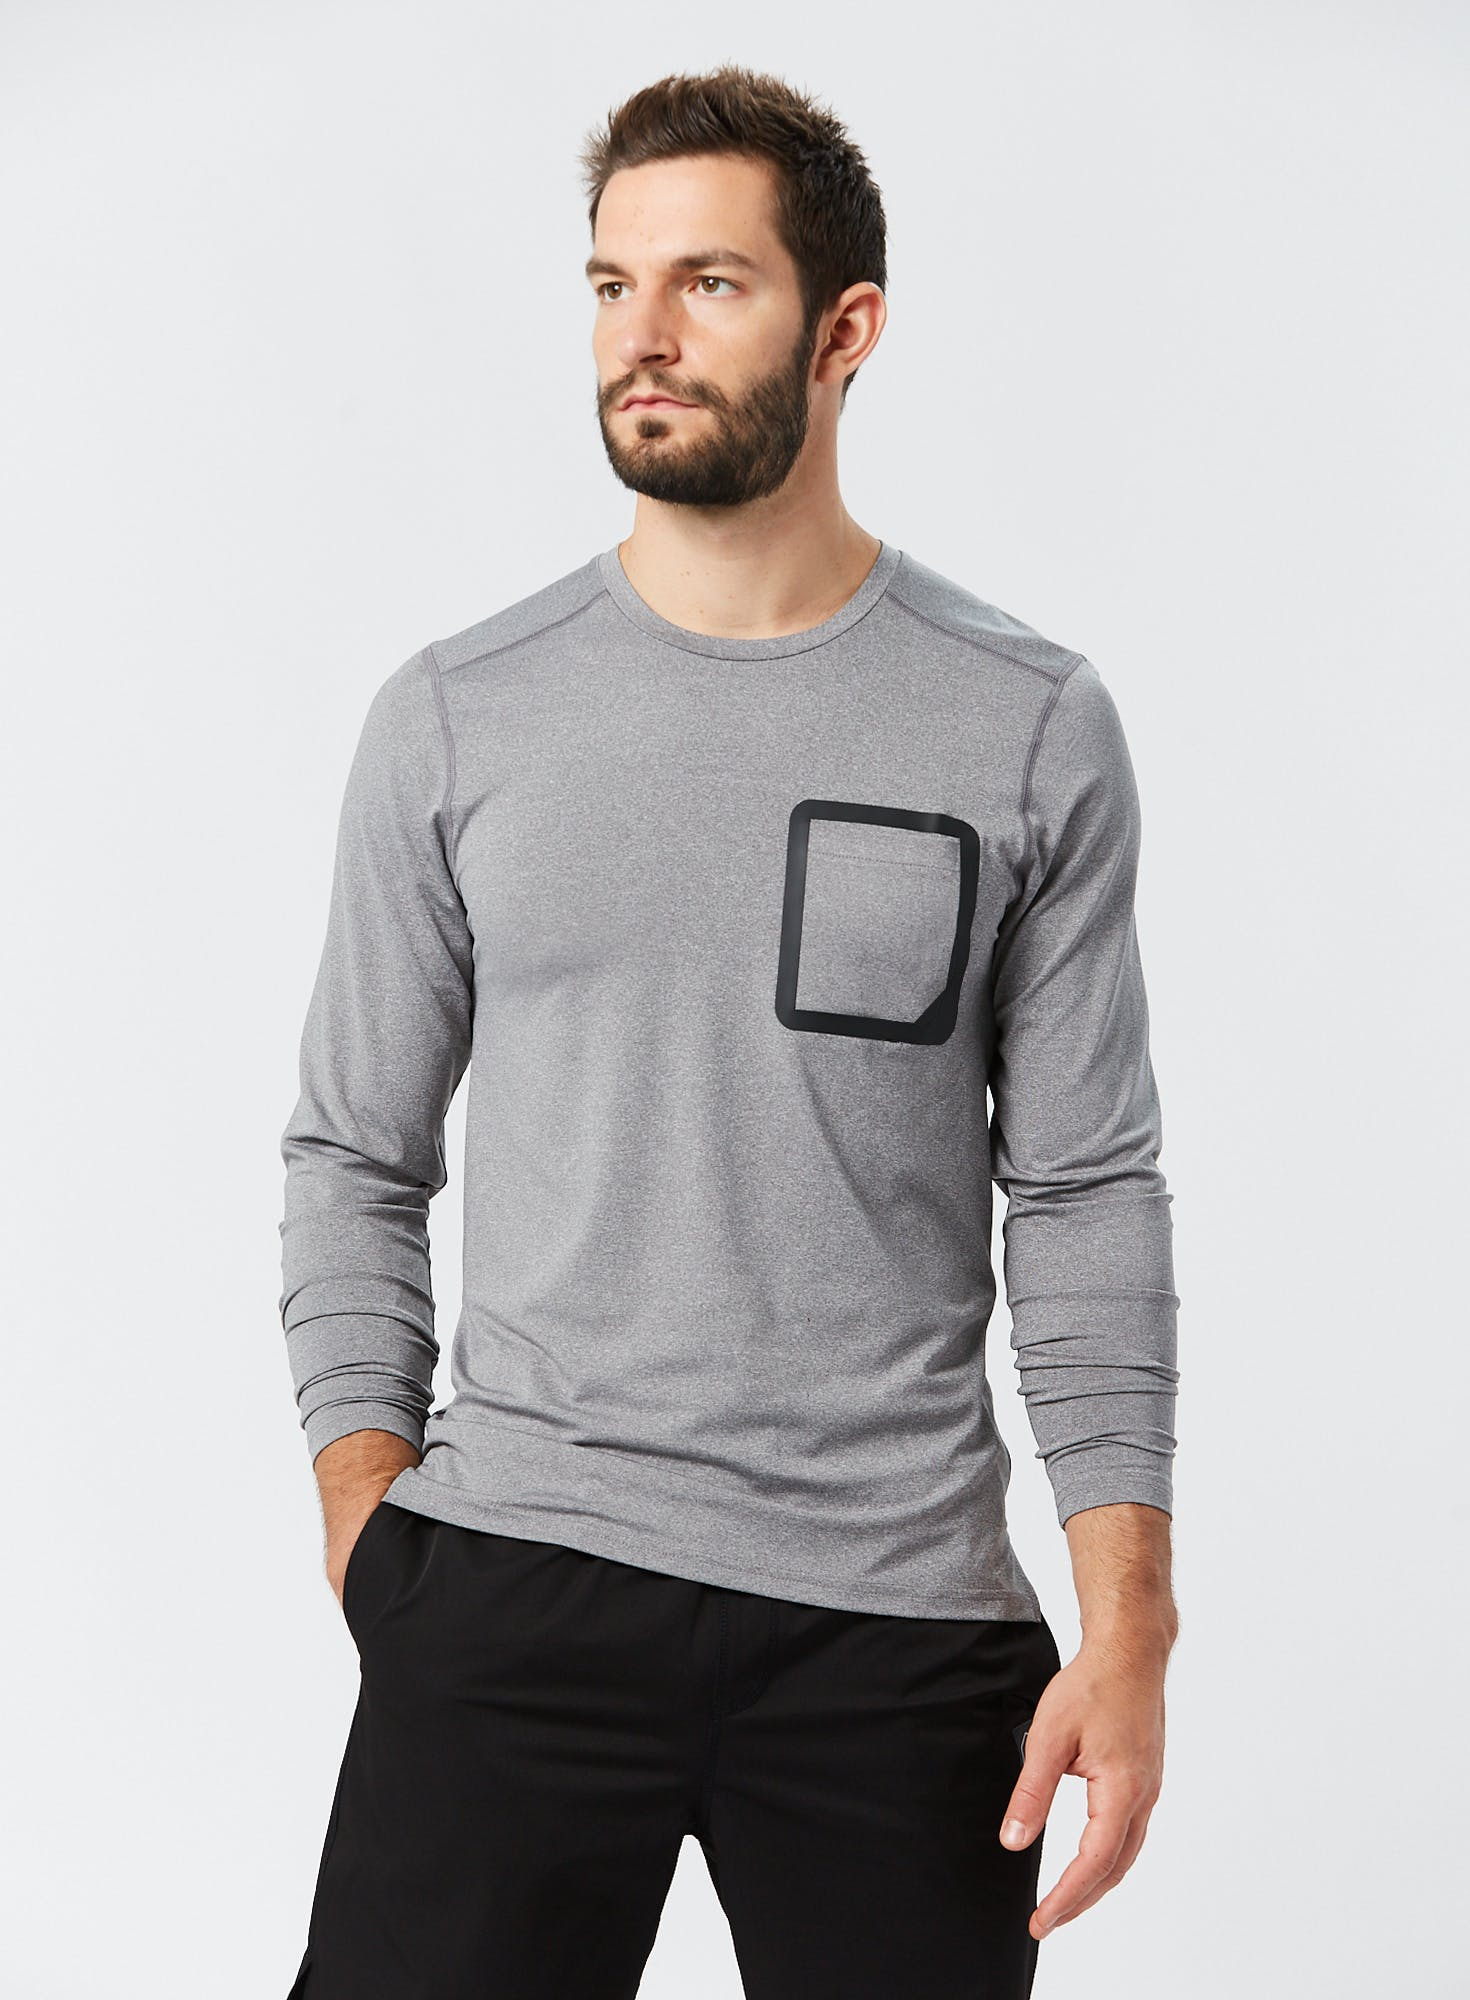 Tech Stretch Long Sleeve Tee